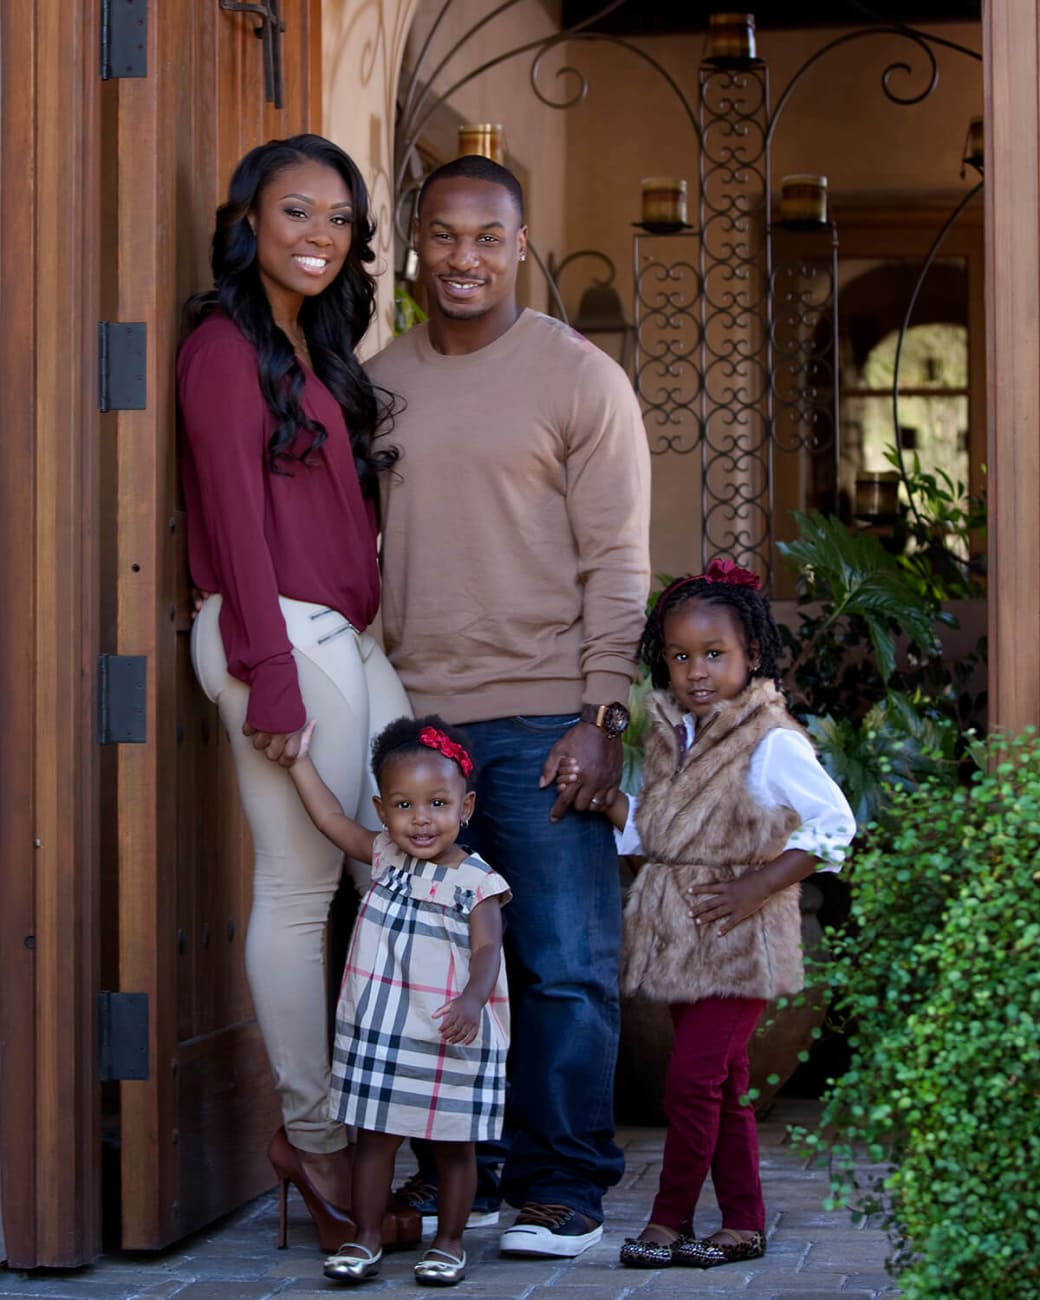 Sproles-family-daughter-family-wife-husband-football-